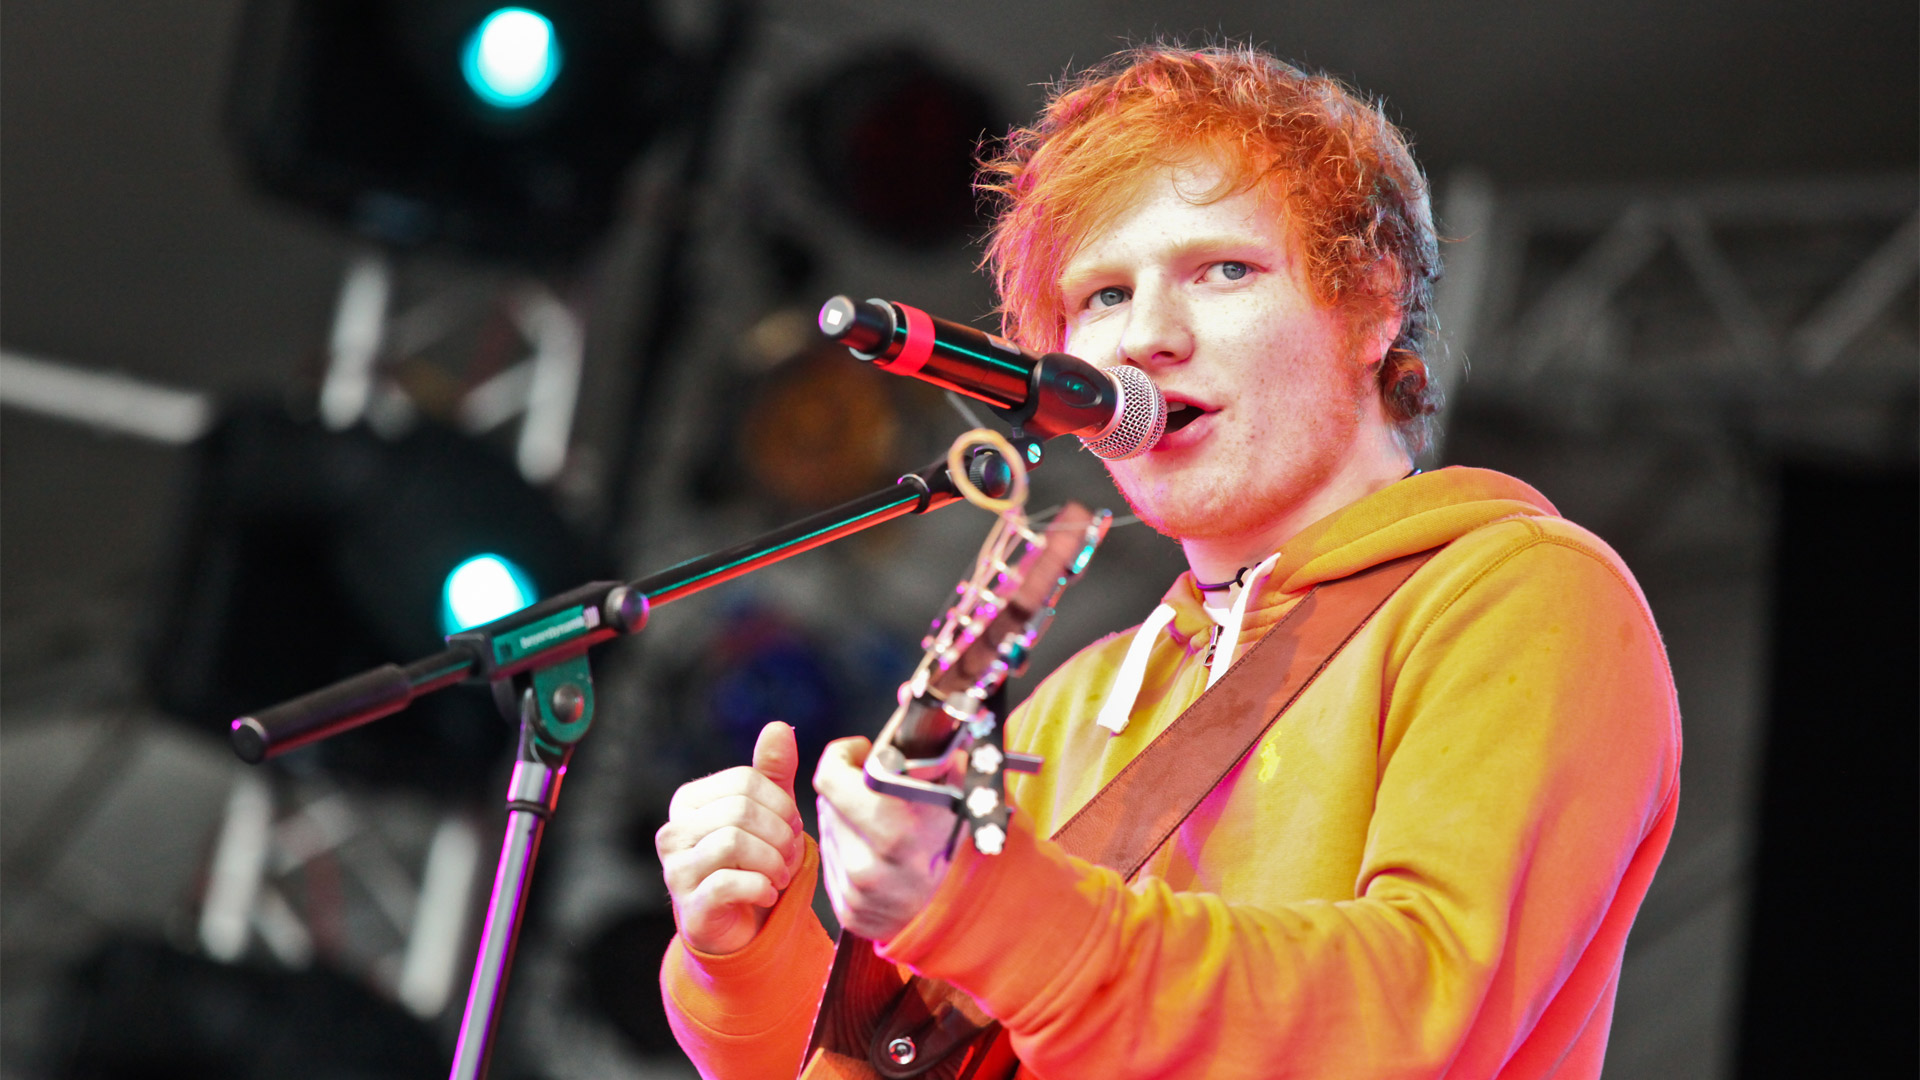 Ed Sheeran Photos - Ed Sheeran Photos